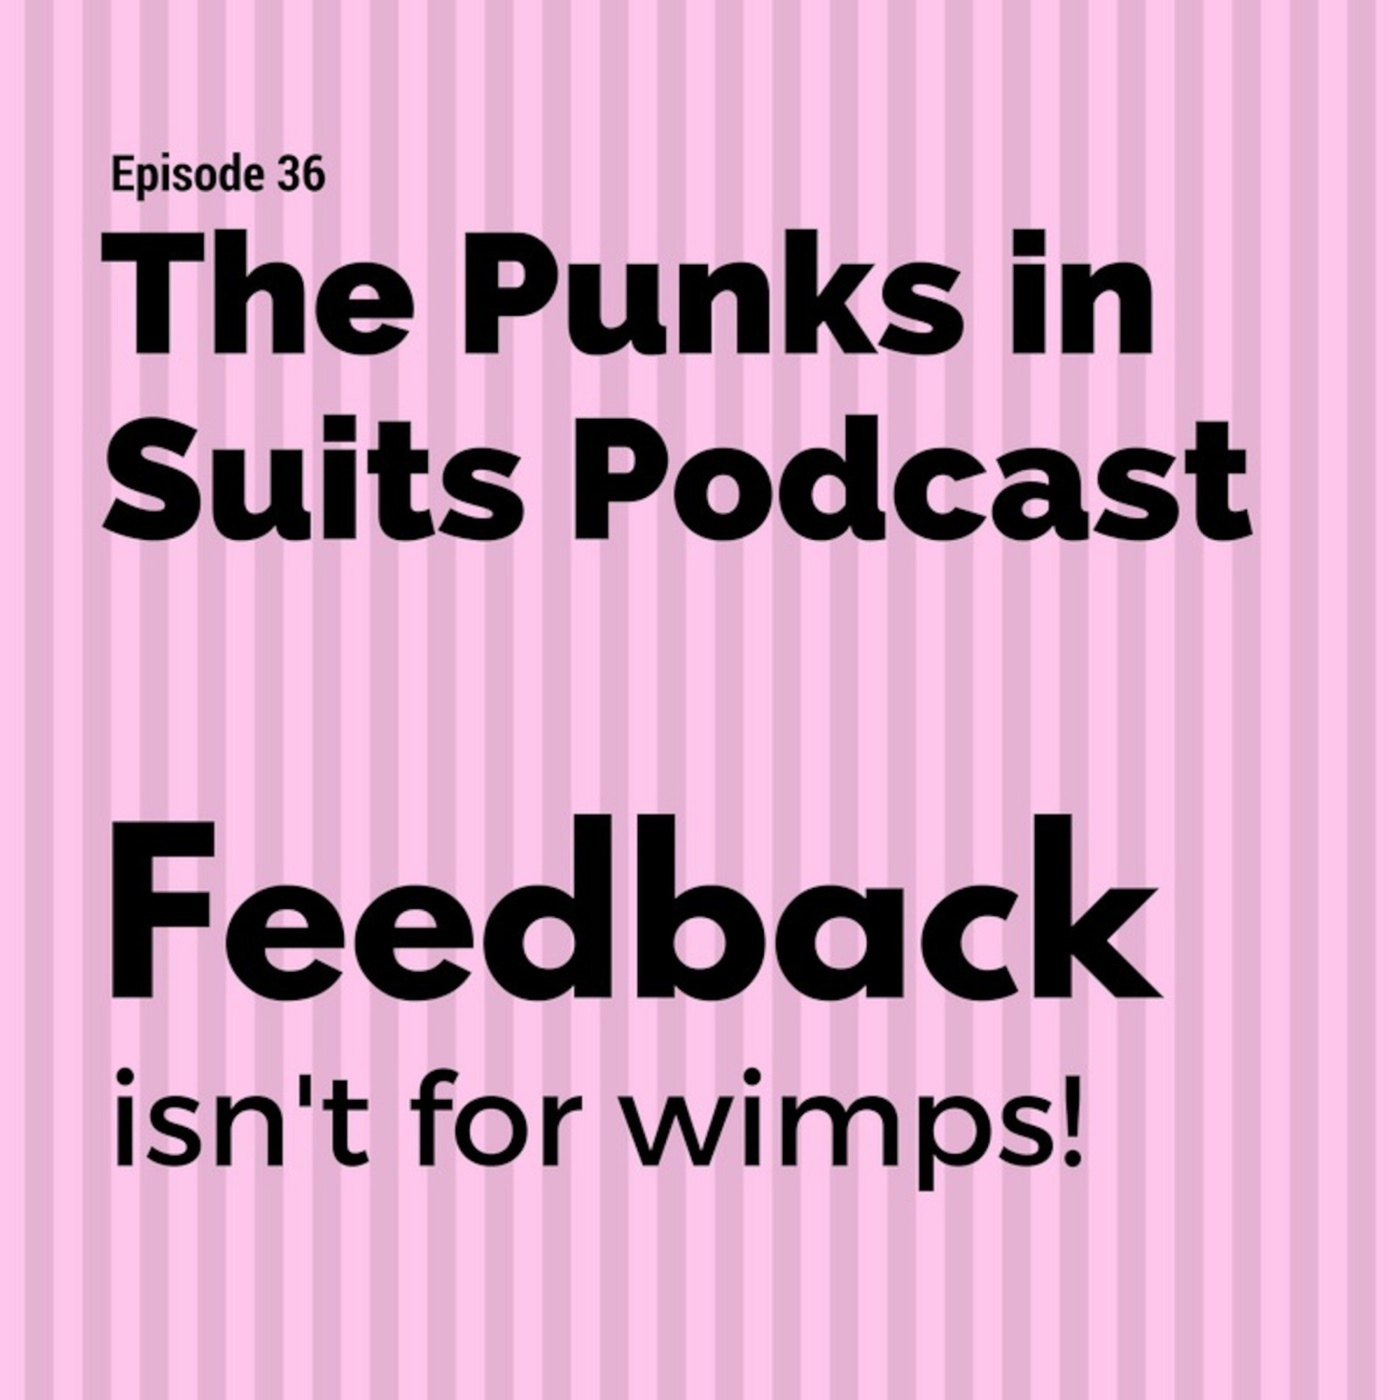 Episode 36: Feedback isn't for wimps!